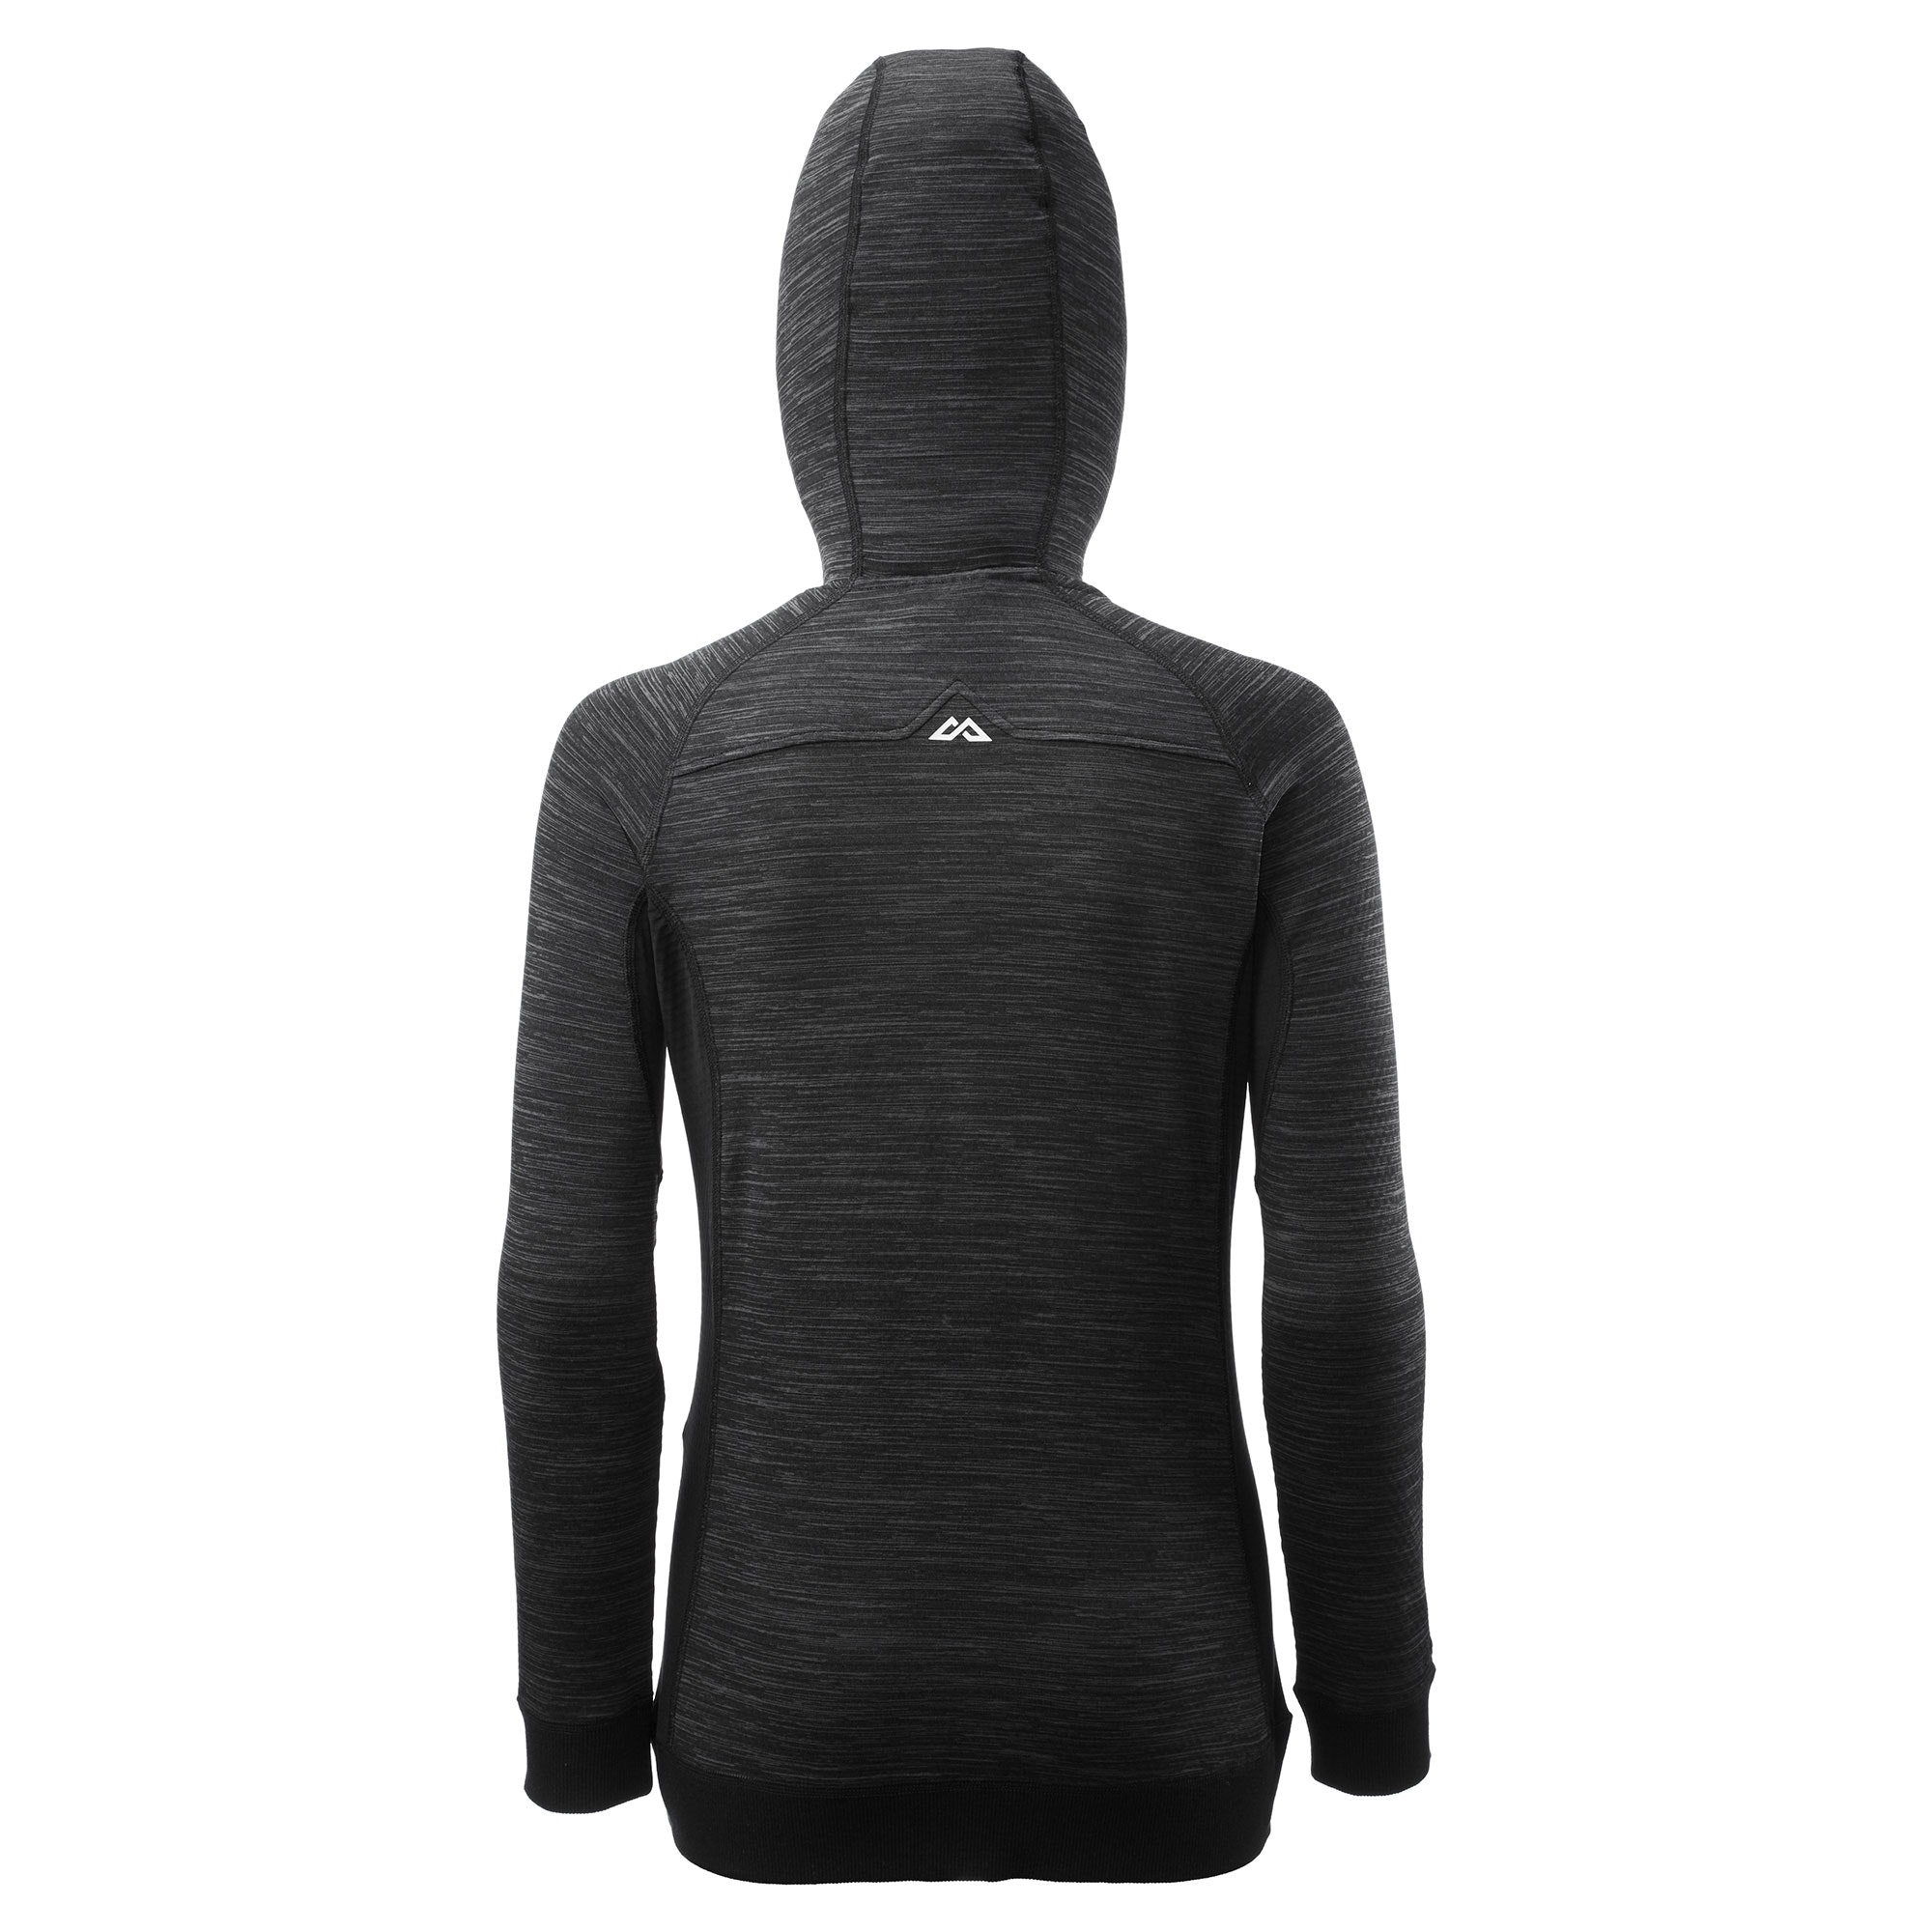 NEW-Kathmandu-Acota-Women-s-Hooded-Fleece-Lightweight-Breathable-Outdoor-Jacket thumbnail 12